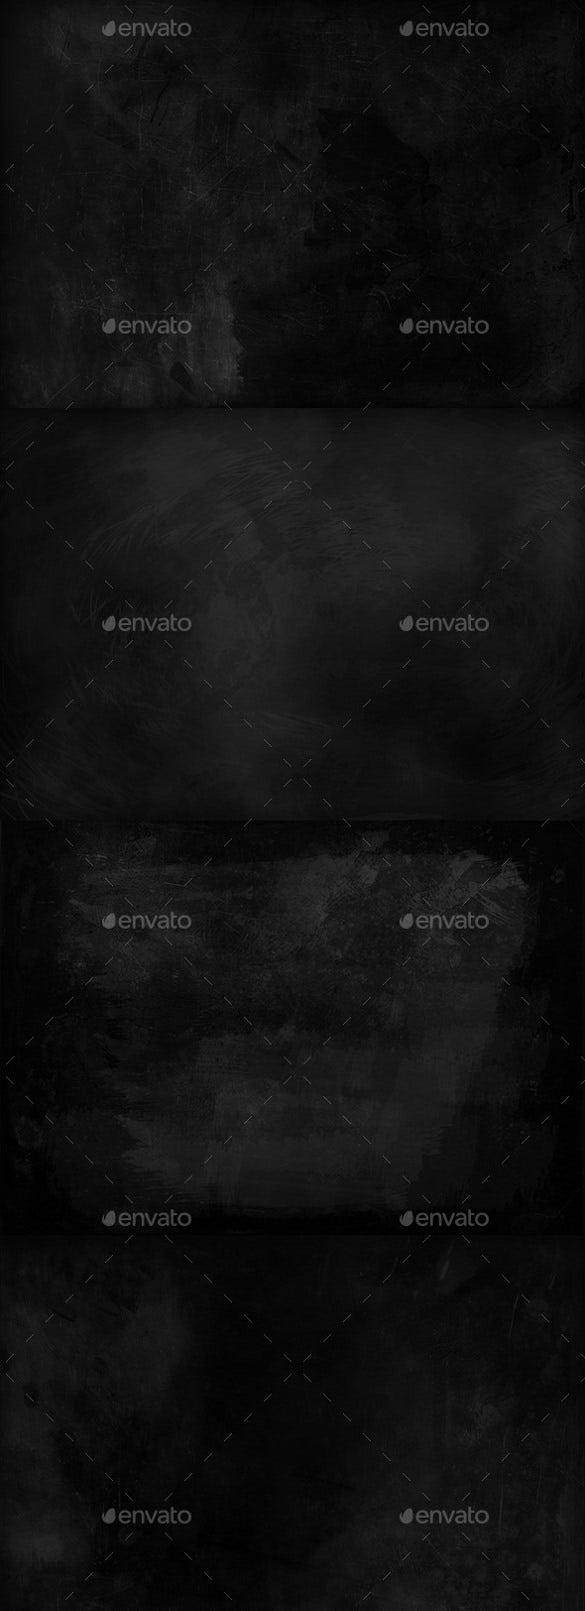 balck chalkboard background for download